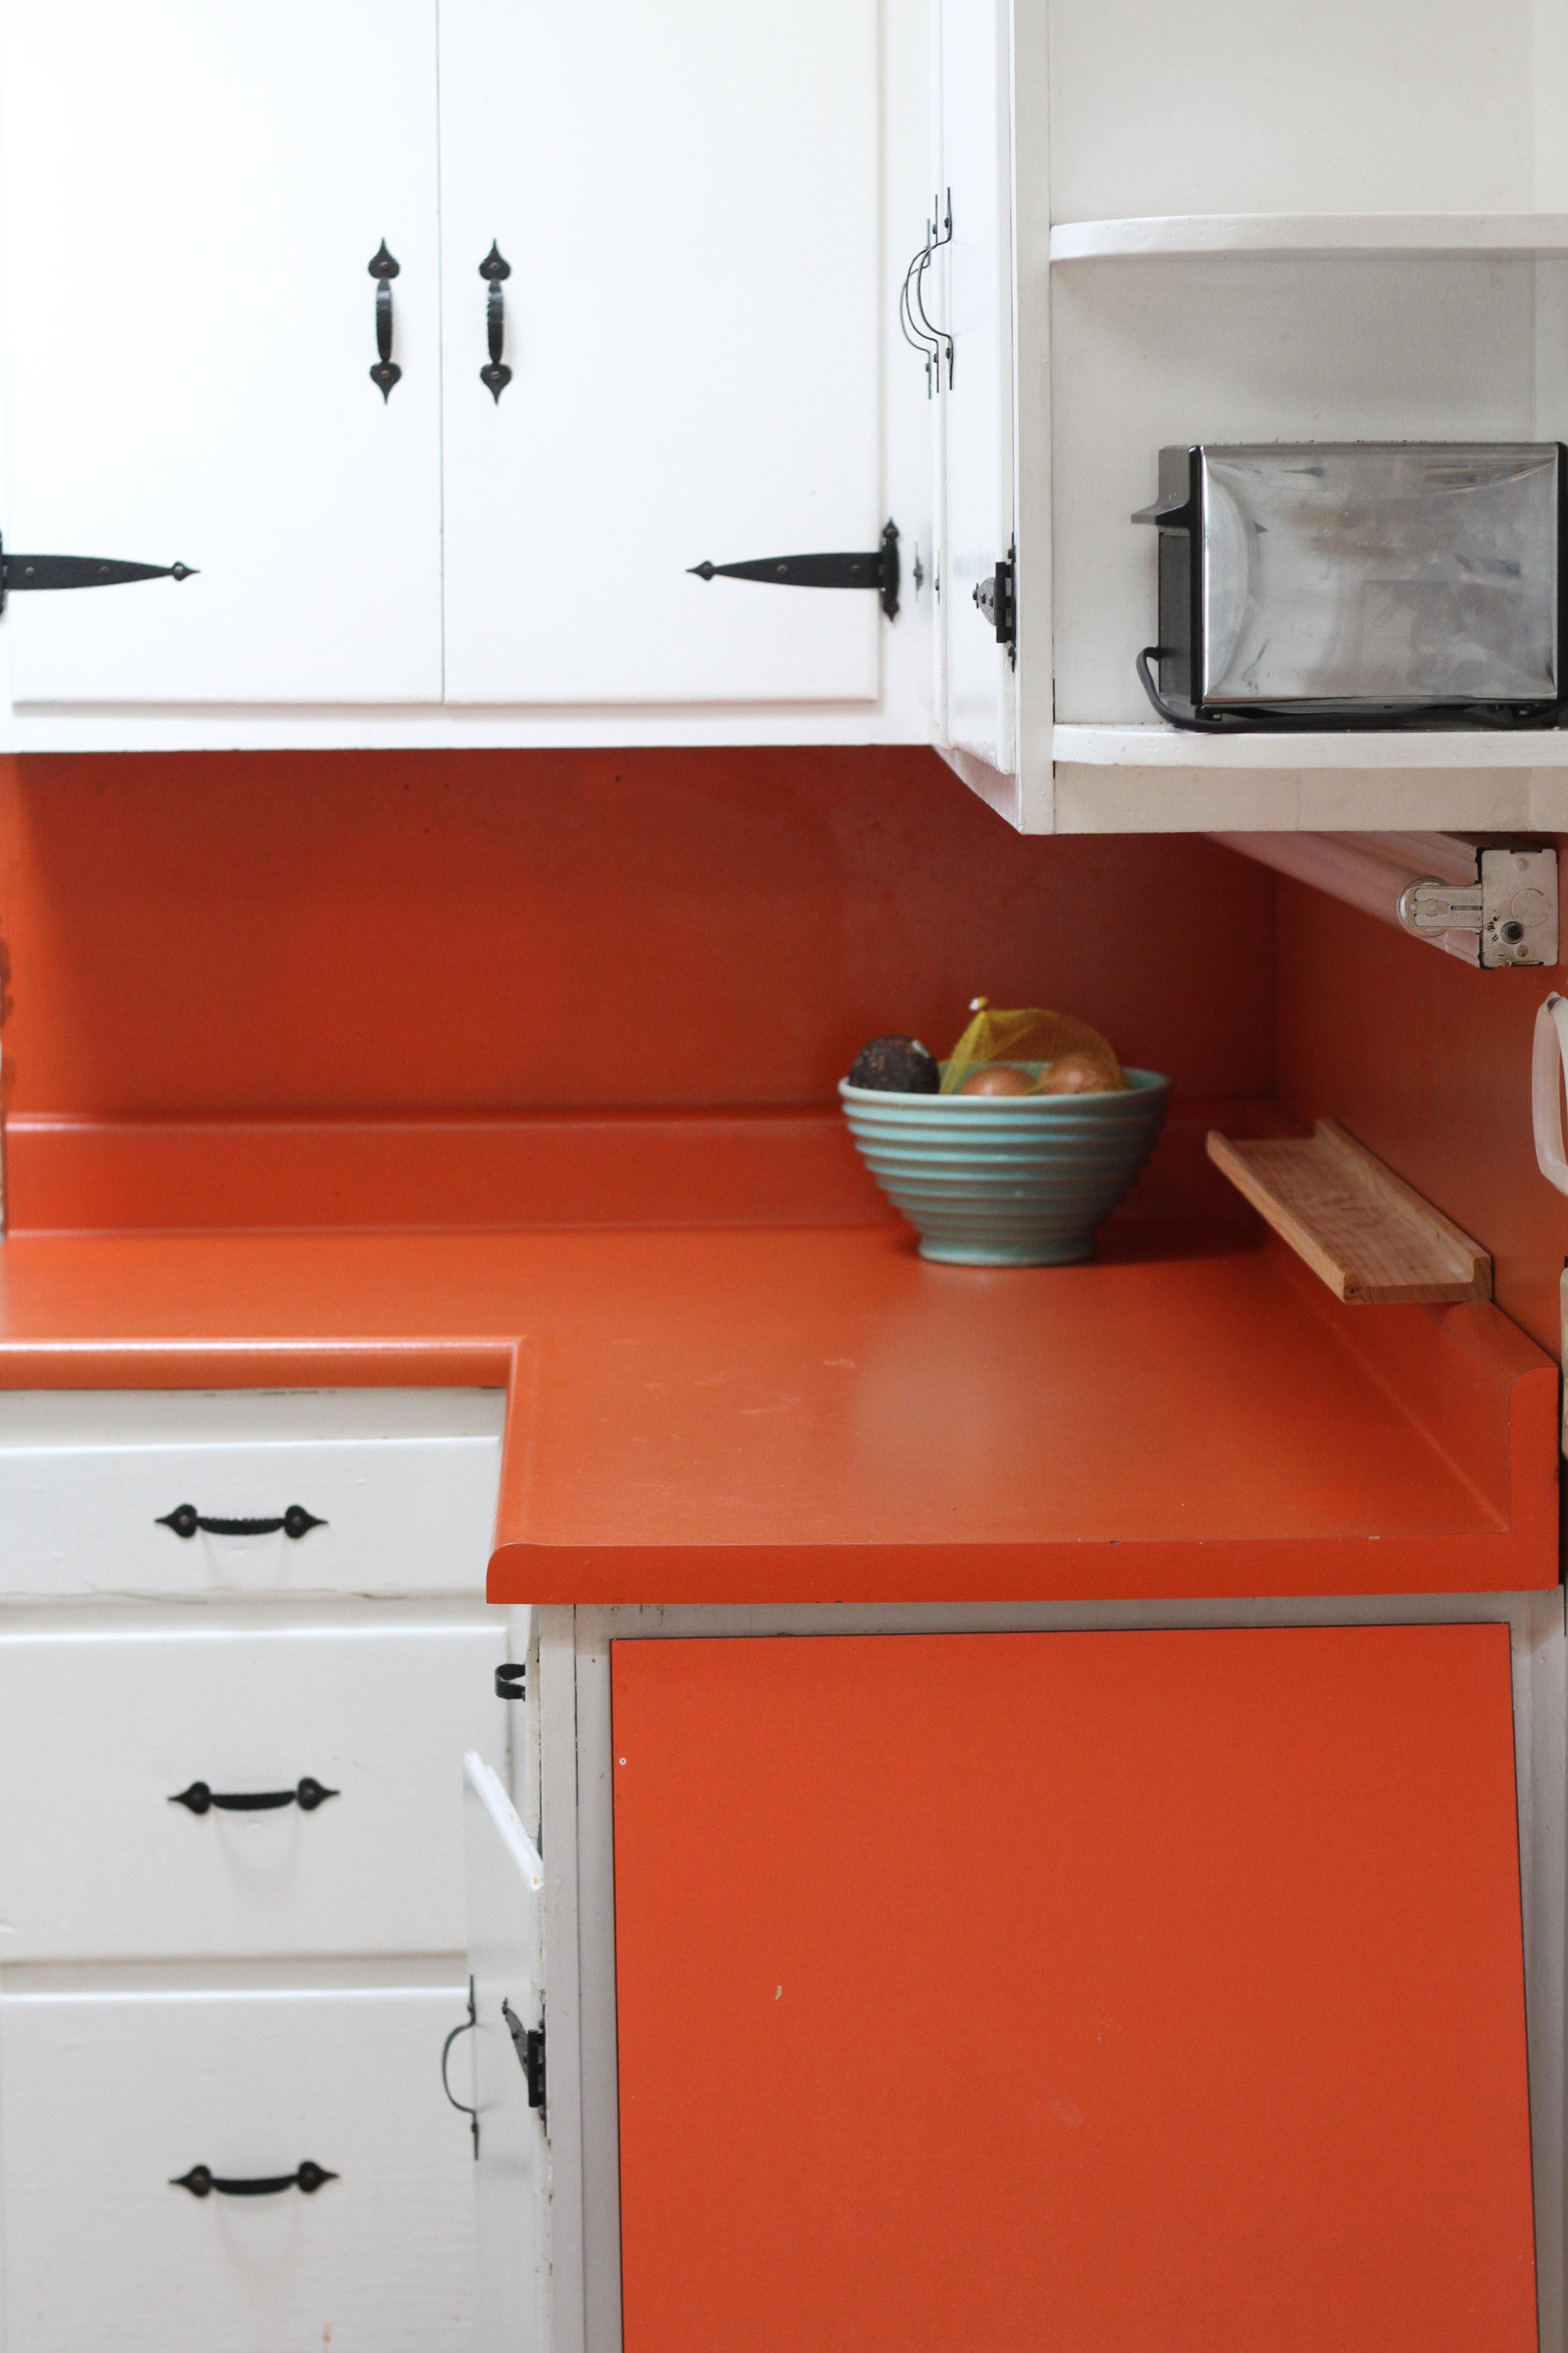 Formica Kitchen Countertops Are Worth A Second Look Apartment Therapy